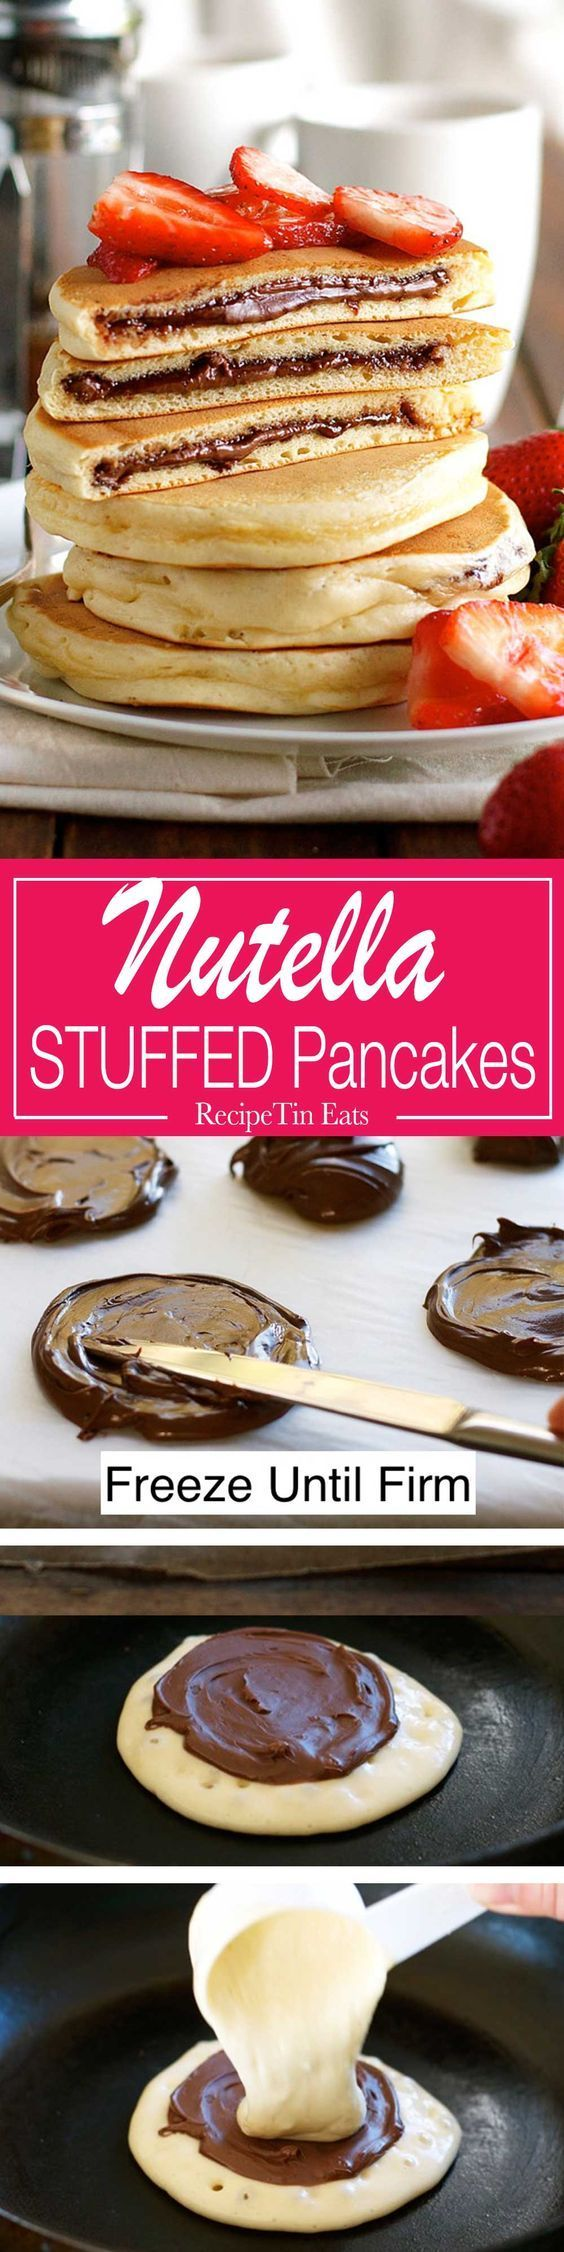 OH MY GOSH. These were amazing. I want to eat the whole batch but I'm trying to…